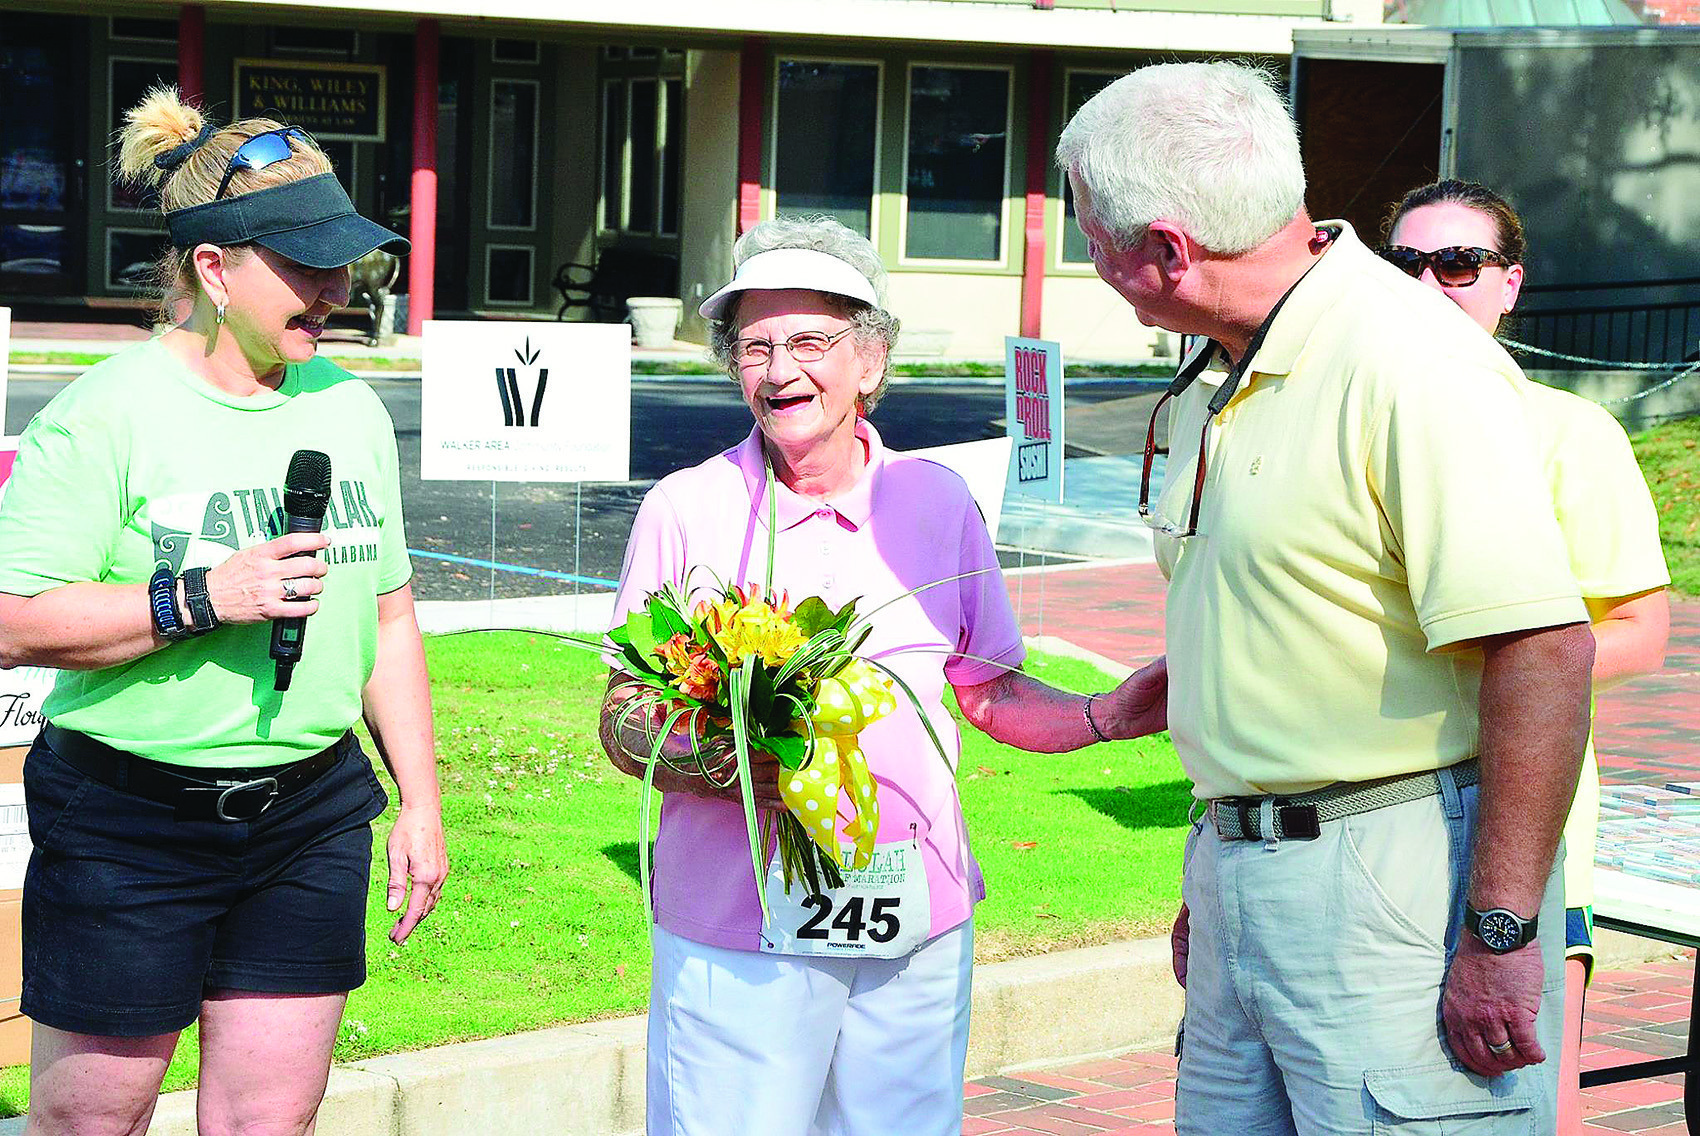 Mayor David O'Mary presents Ruth Ingle with a bouquet of flowers after Ingle, 82, finished the Tallulah 5K in slightly over 47 minutes on June 9. Also pictured is run organizer Angela Jo Harris.